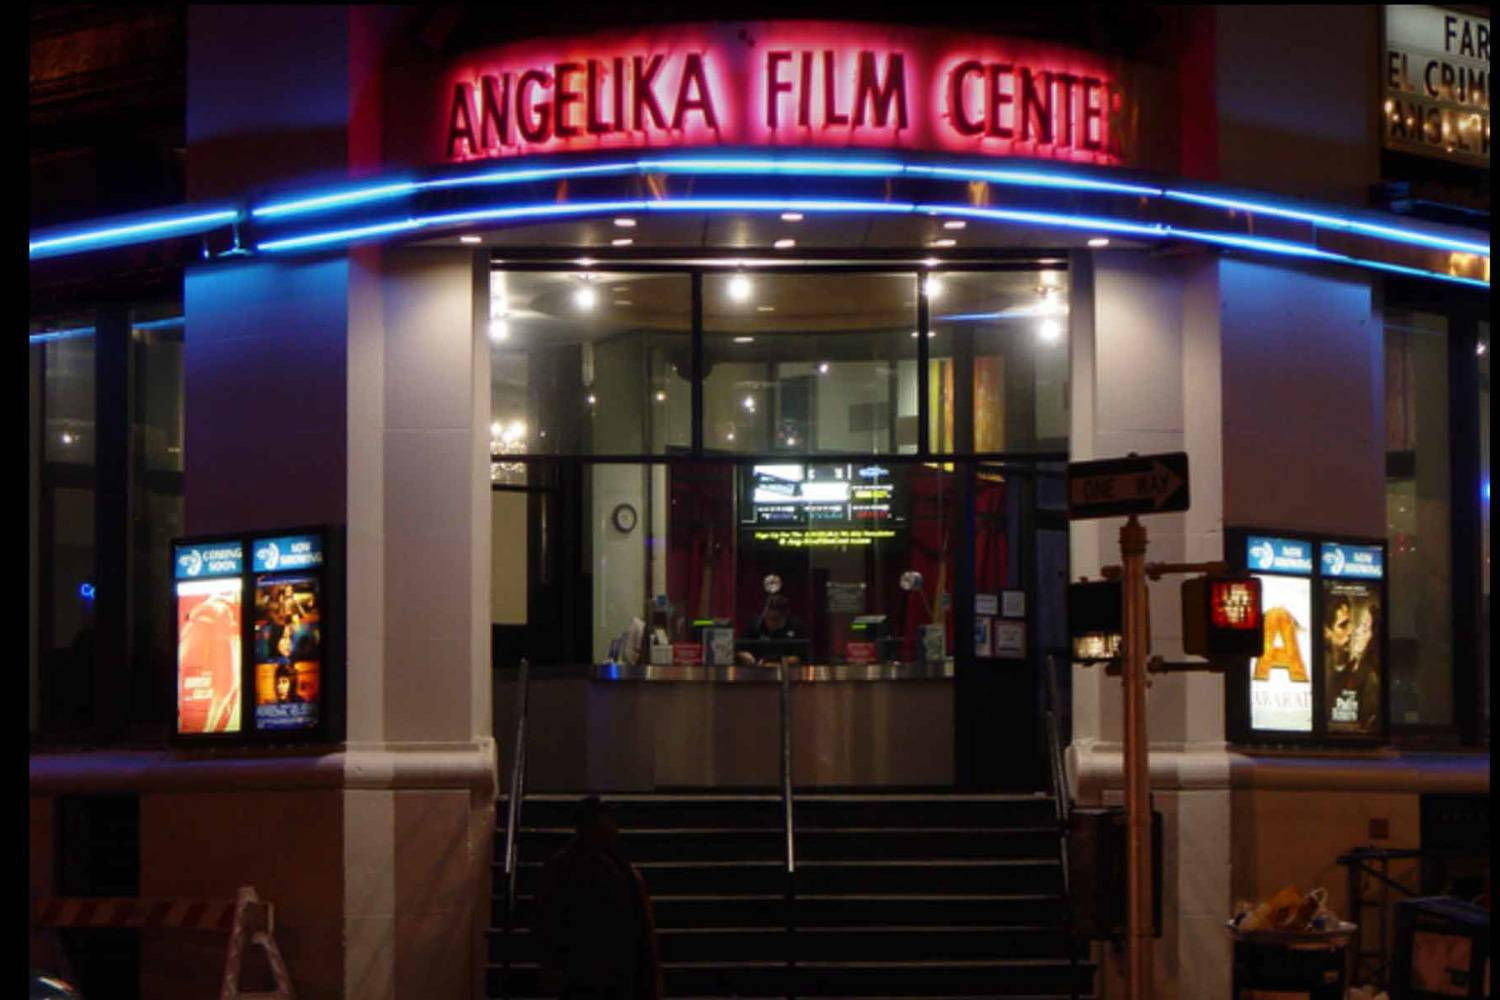 Image of entrance of Angelika Film Center with neon-lit sign.